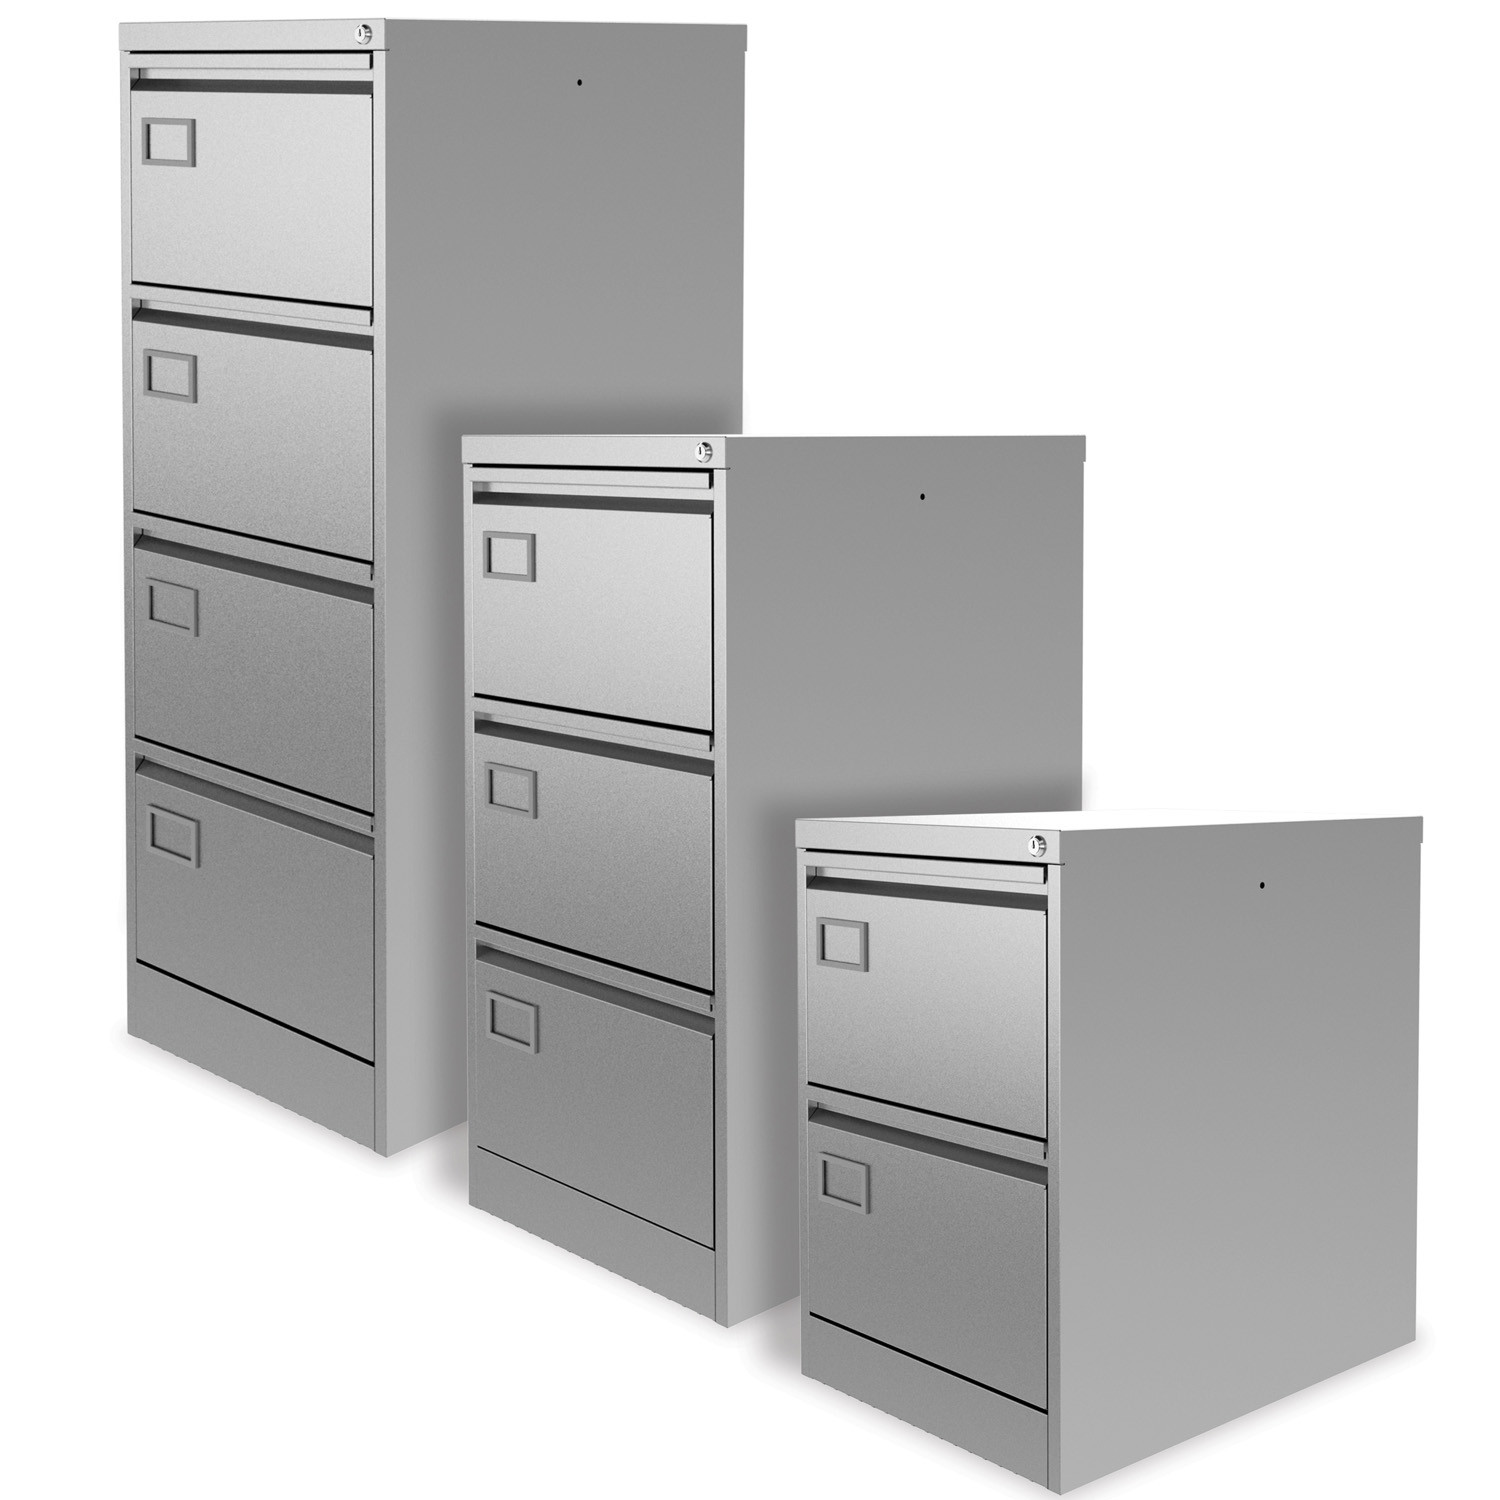 Executive Filing Cabinet Sizes